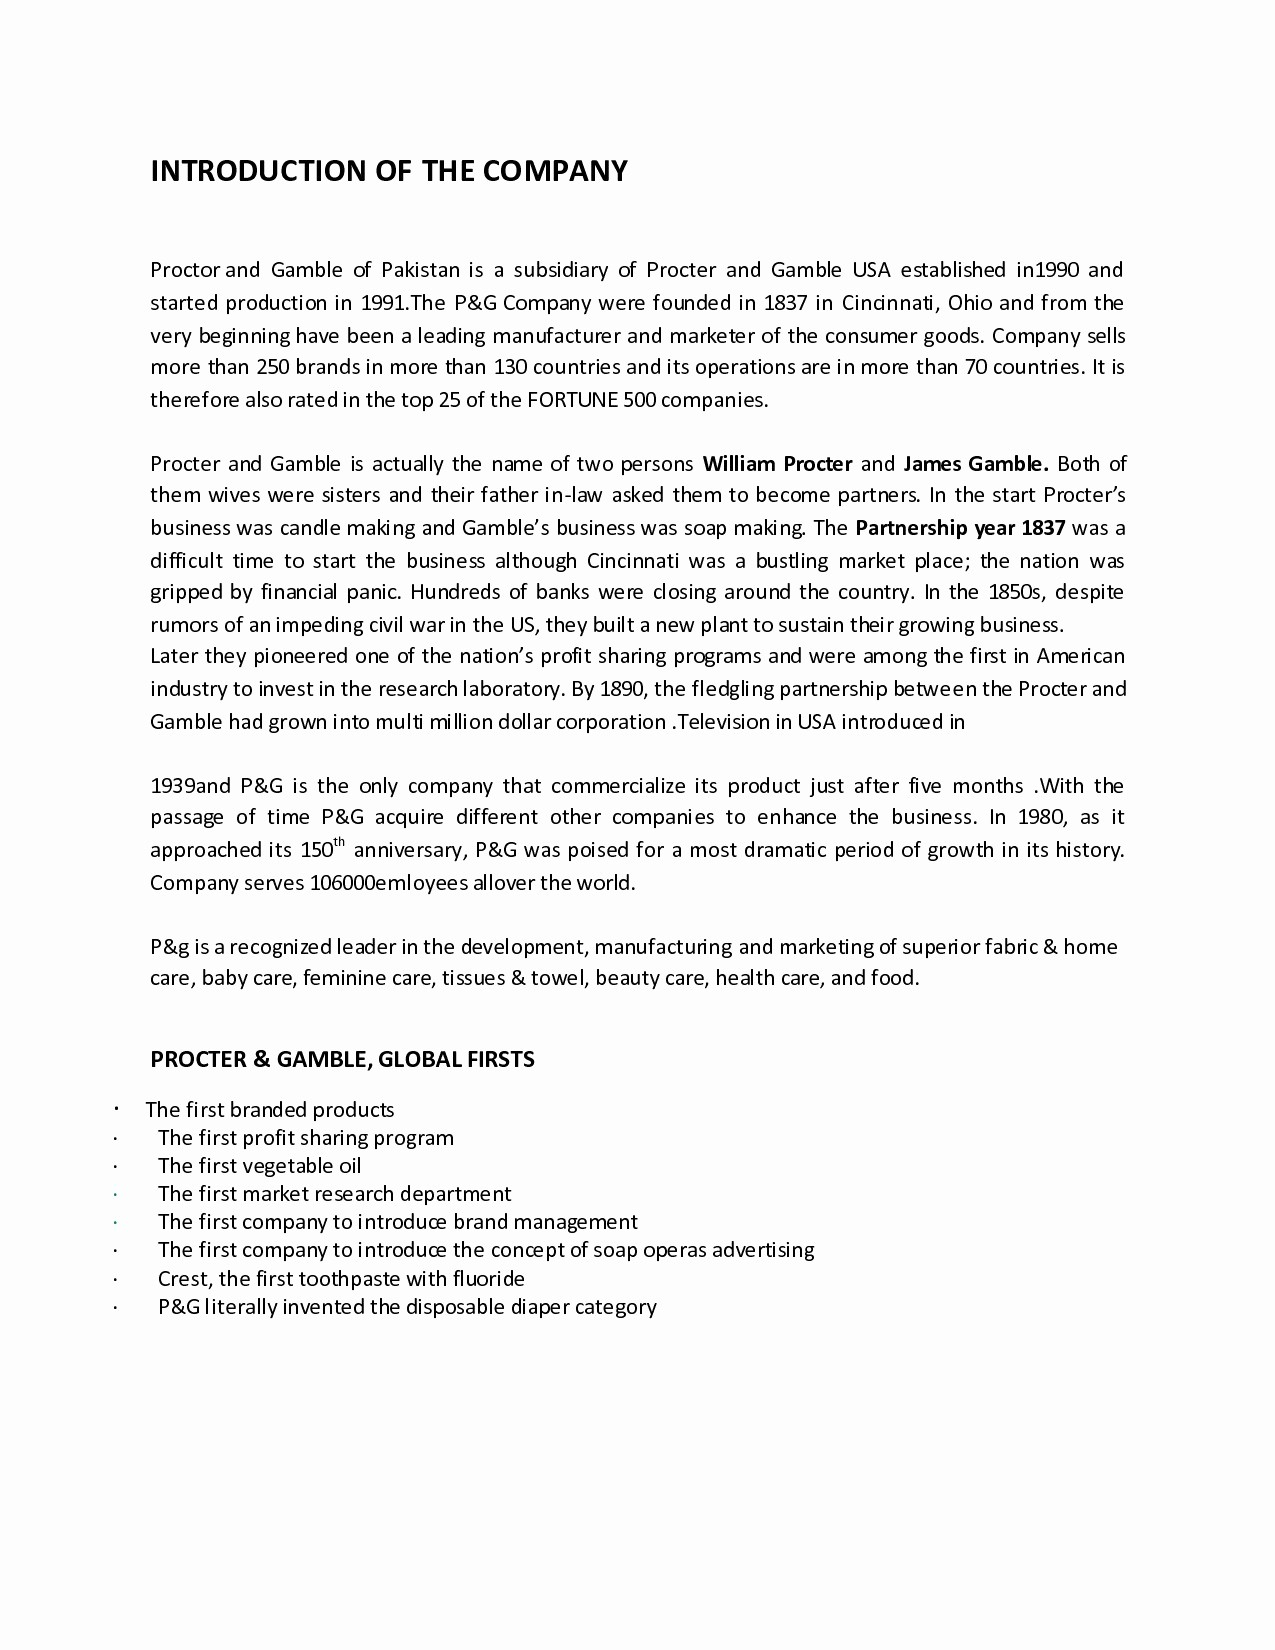 Writing A Business Letter Template - Sample Email Cover Letter for Business Proposal